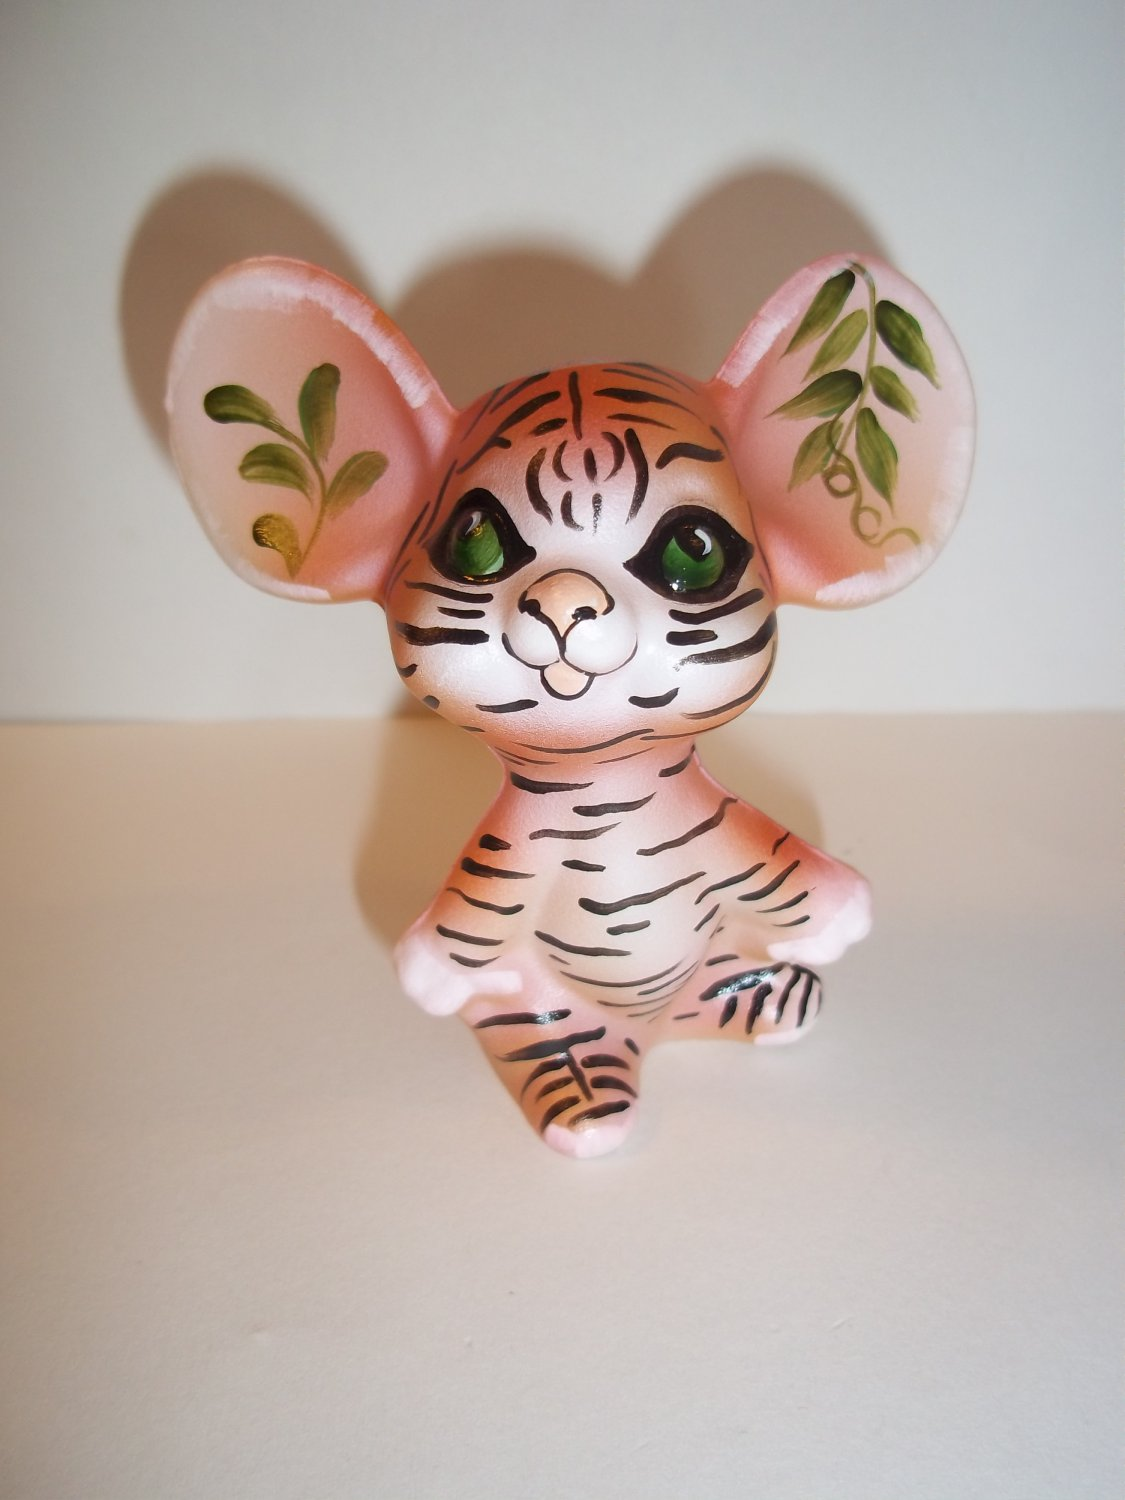 Fenton Glass Orange Bengal Tiger Mouse Figurine GSE Ltd Ed Kim Barley #13 of 24